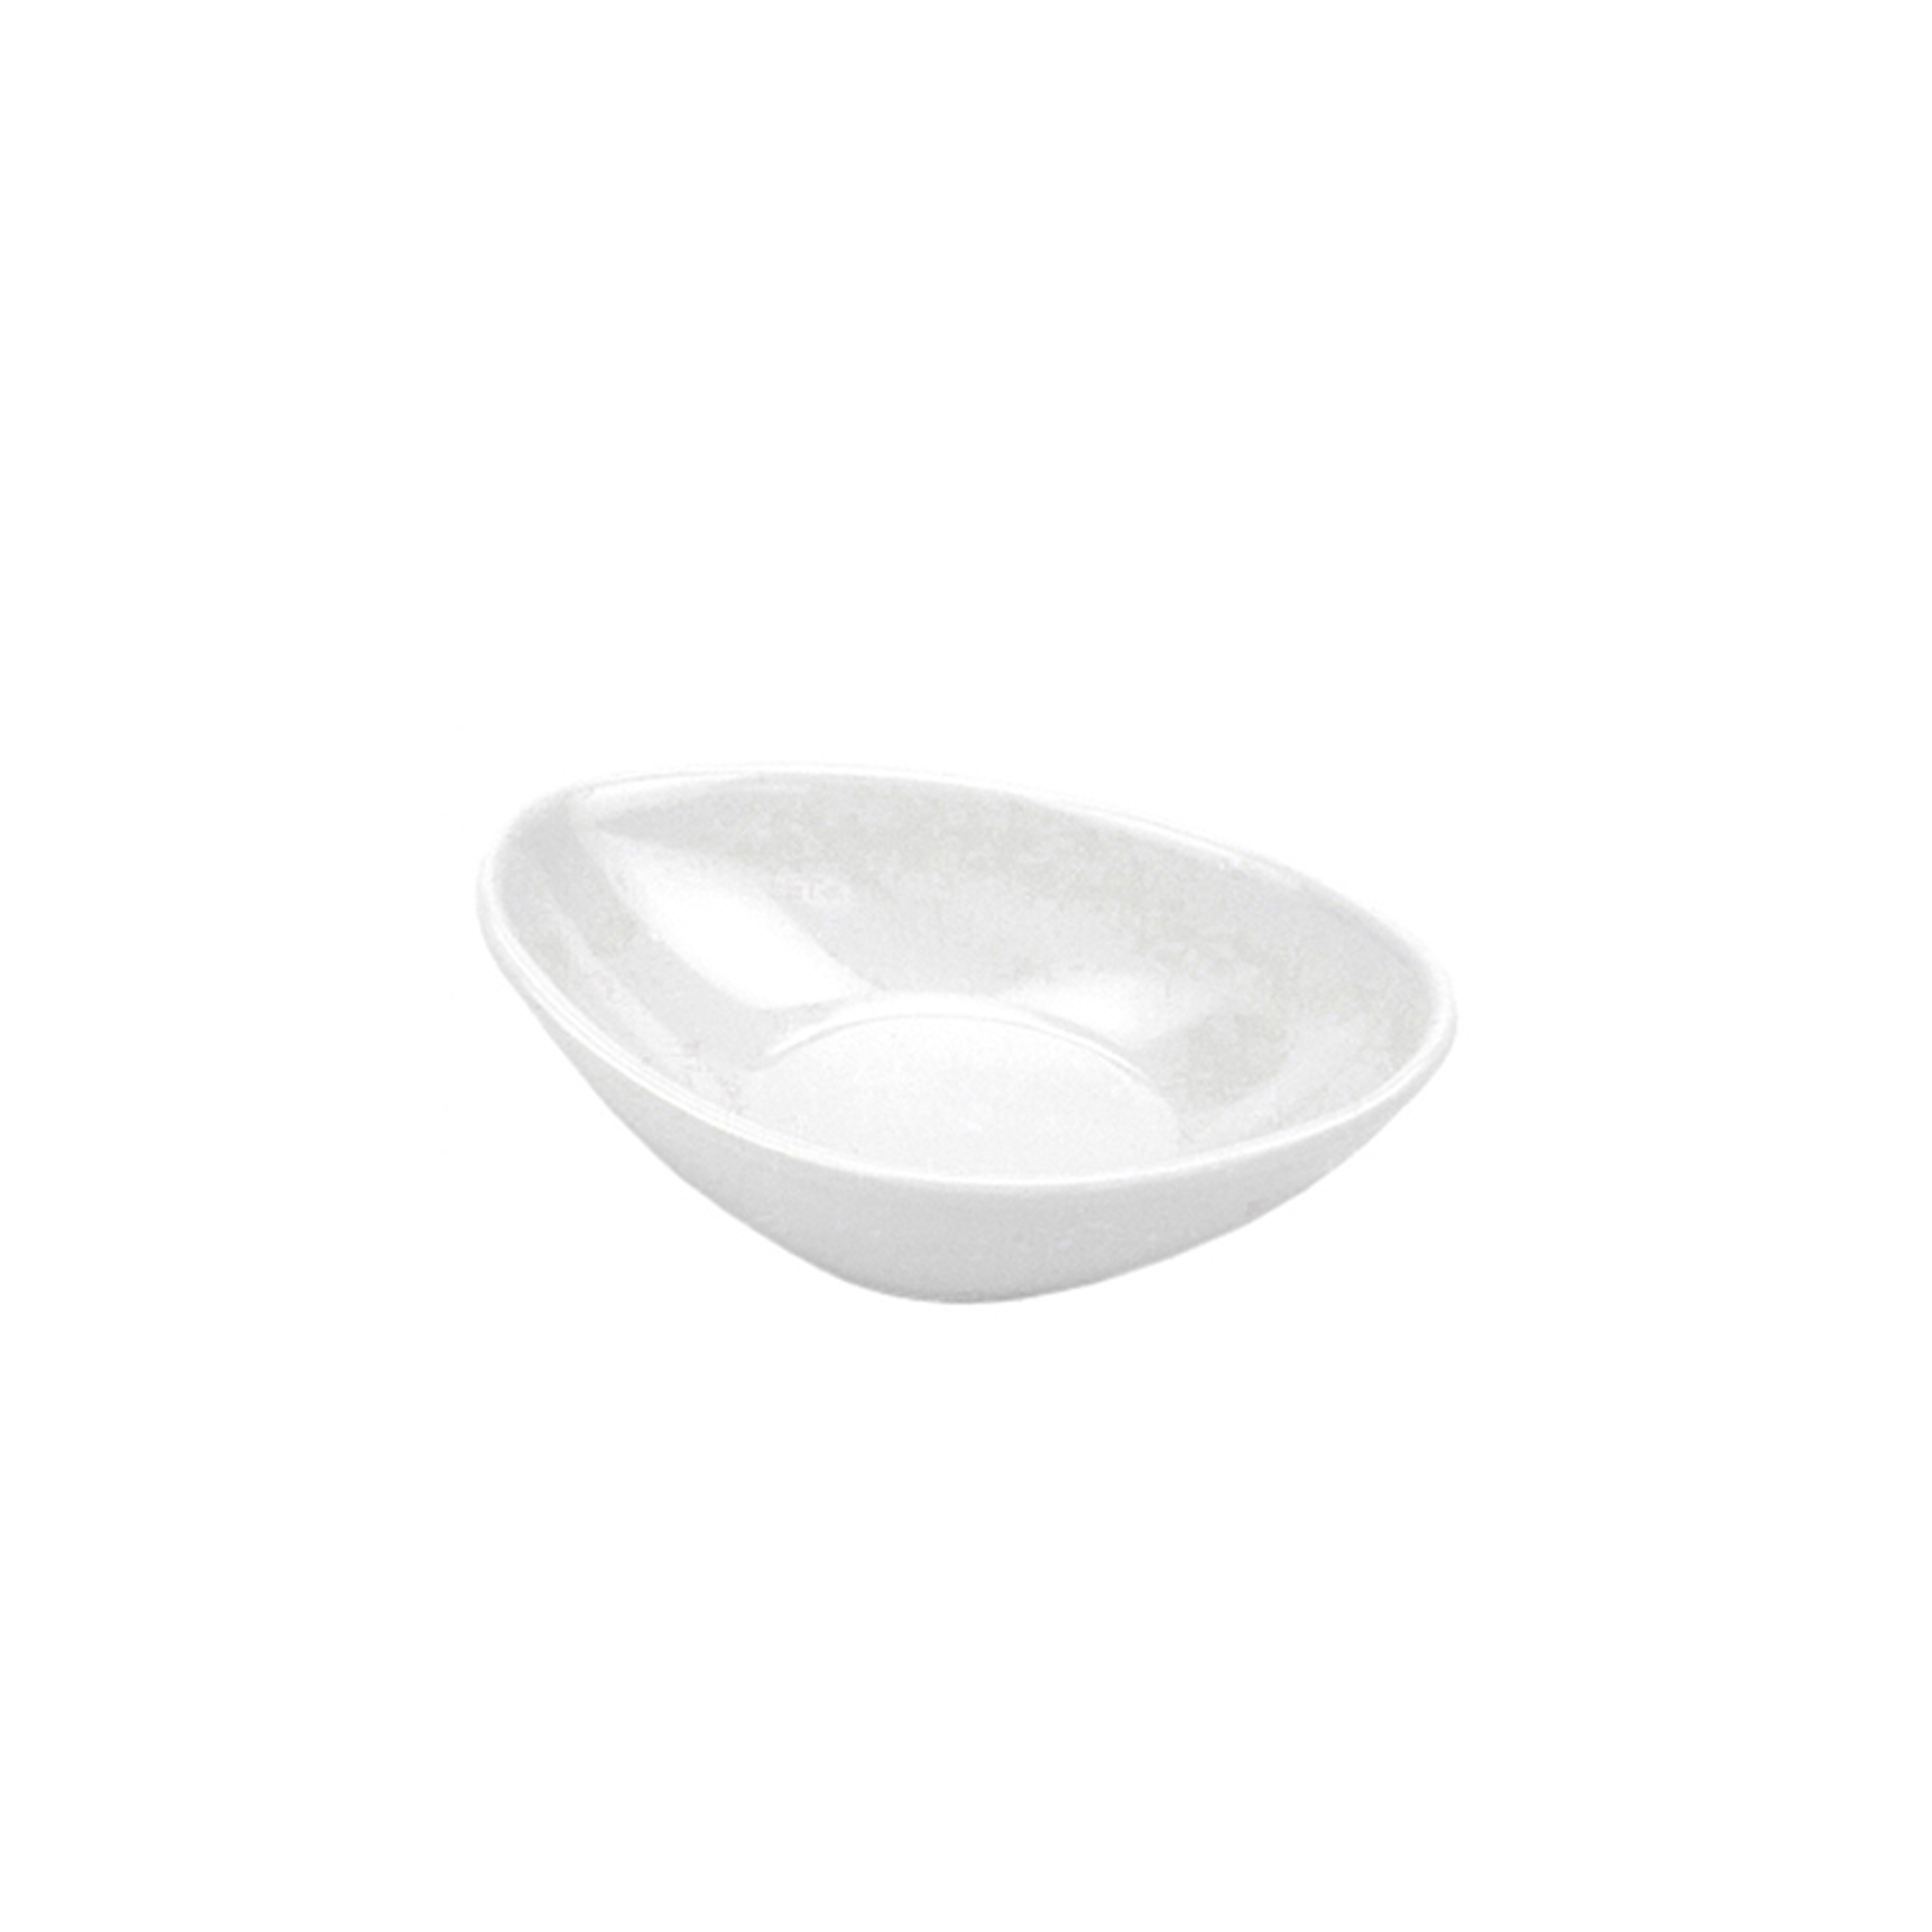 Finger Food Oval Melamina Prof. 9.8x6.2cm - Marca Mix